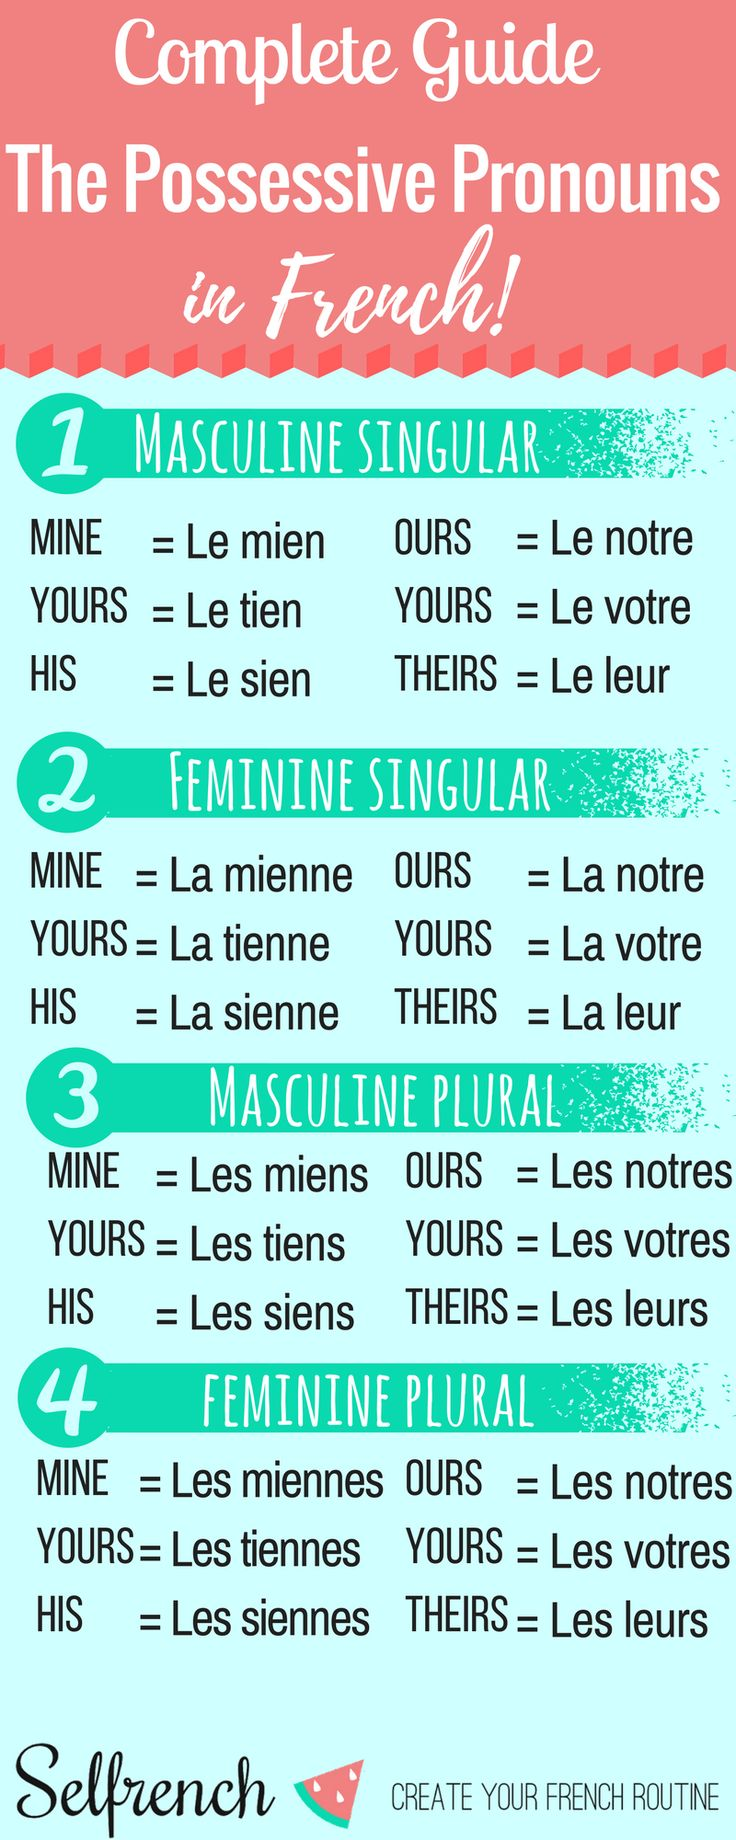 Infographic on French possessive pronouns